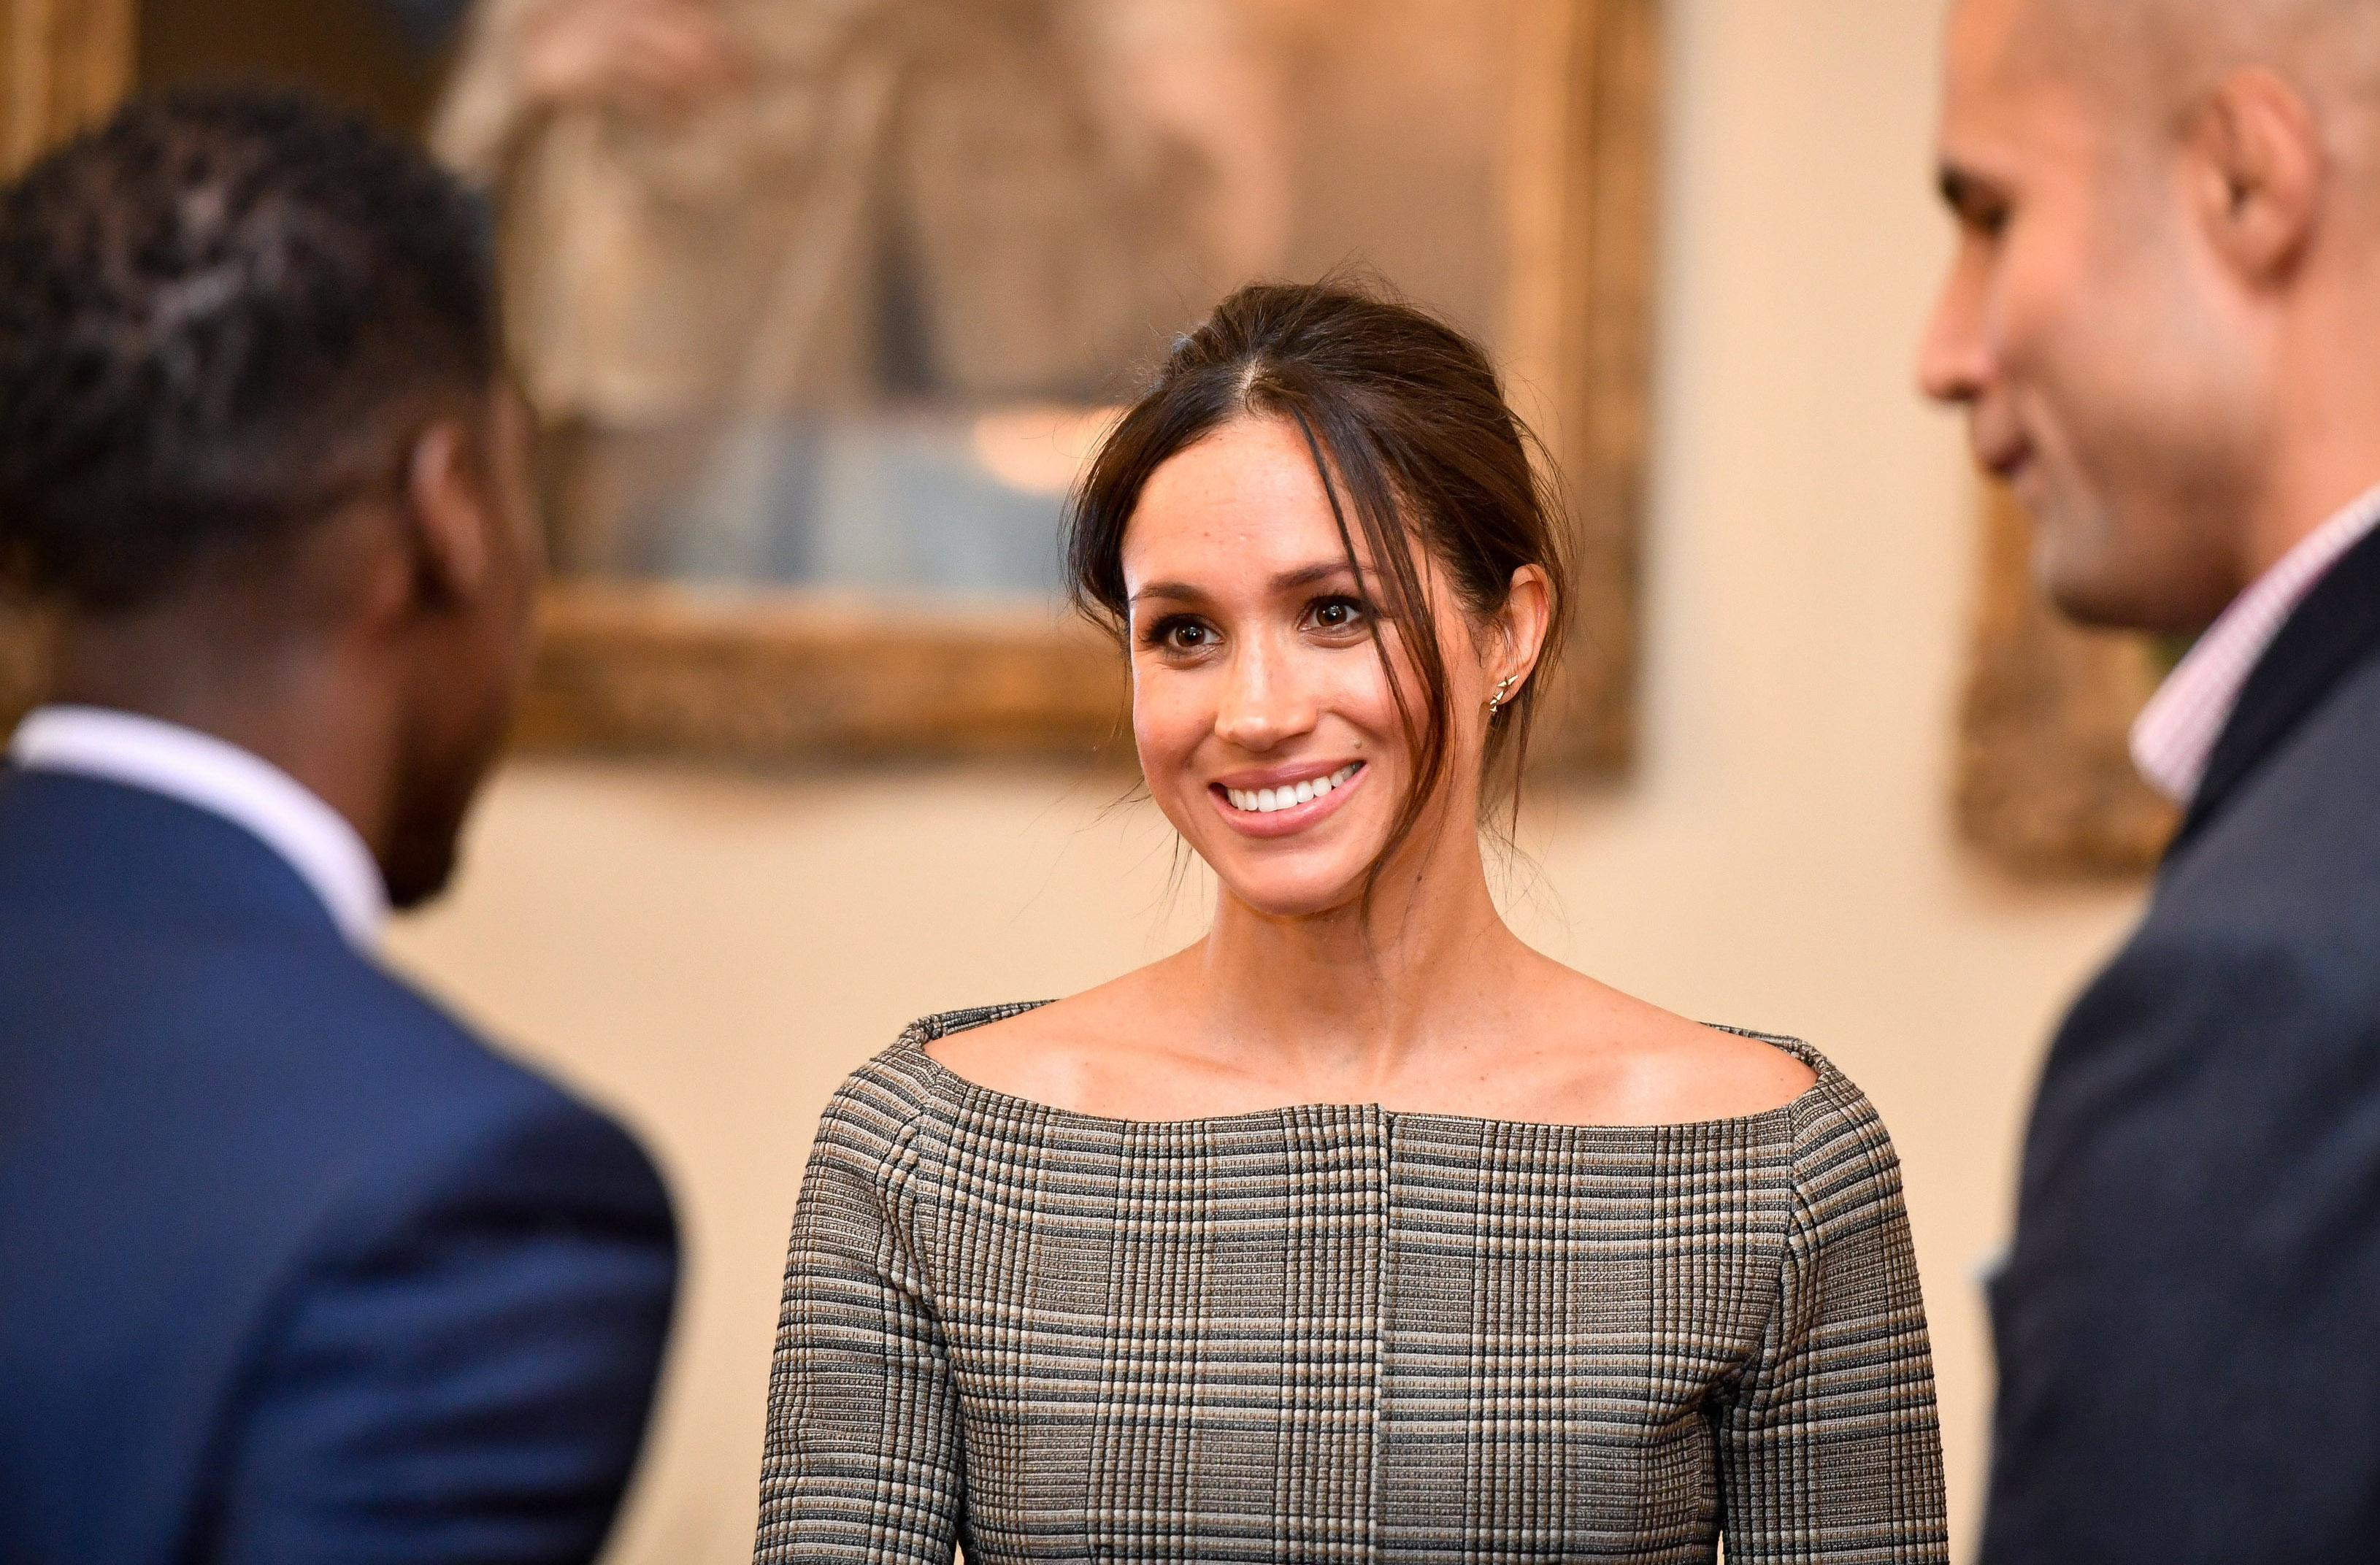 Discussion on this topic: Kate Middleton To Make Debut Visit To , kate-middleton-to-make-debut-visit-to/